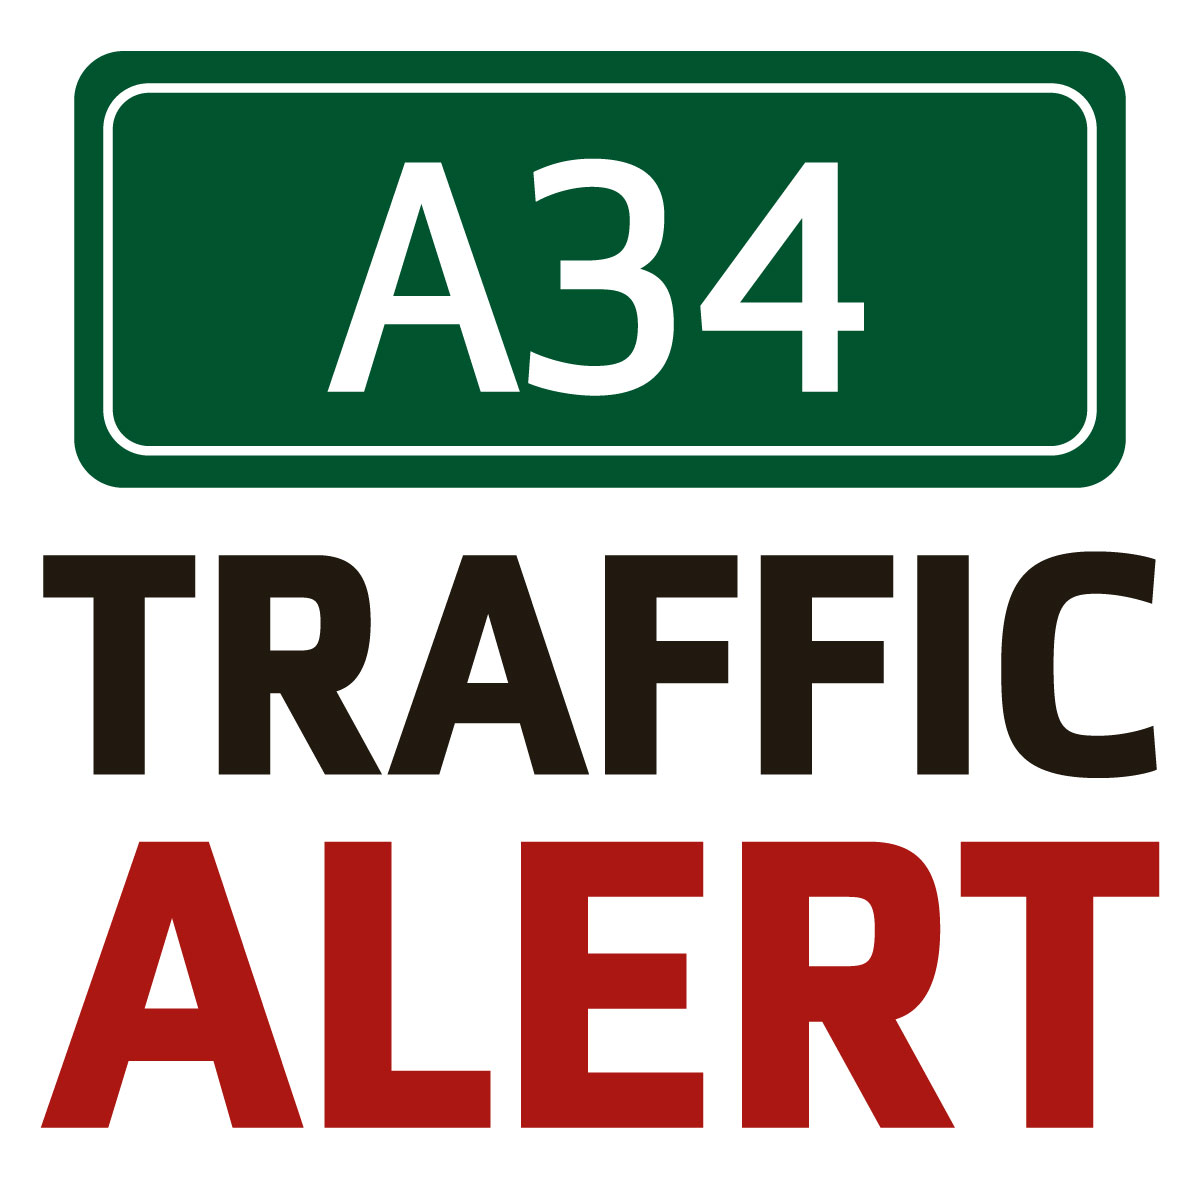 Delays on A34 following accident at East Ilsley